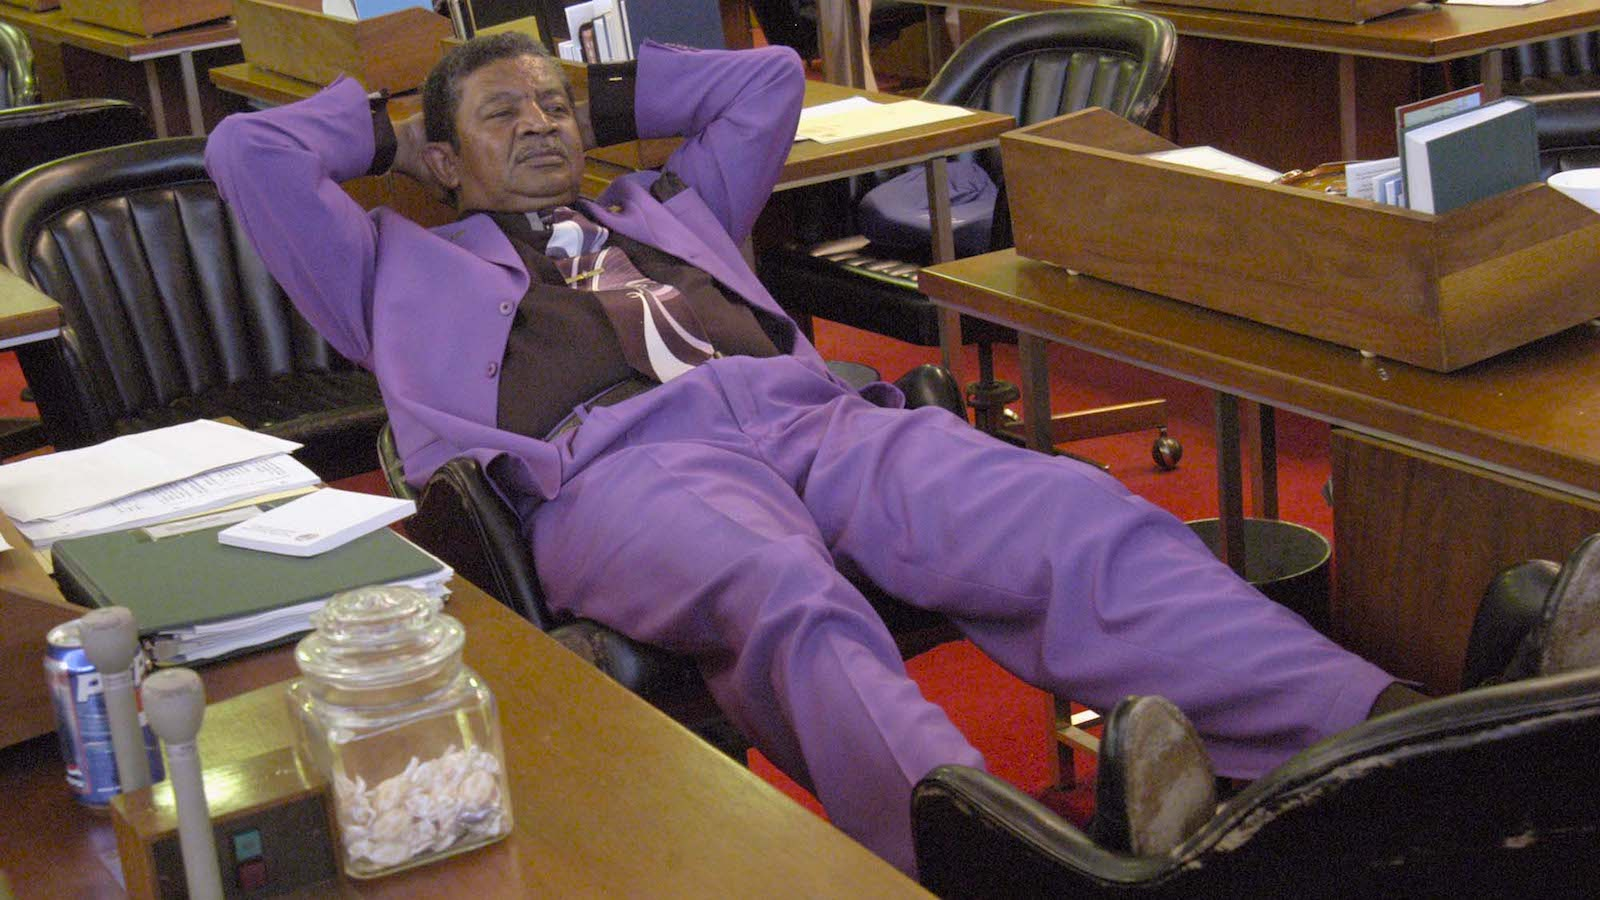 Rep. Larry Womble, D-Forsyth, puts his feet up at his desk on the floor of the House in Raleigh, N.C., Sunday, July 20, 2003, during one of the many recesses as the General Assembly works towards adjournment. (AP Photo/Karen Tam)